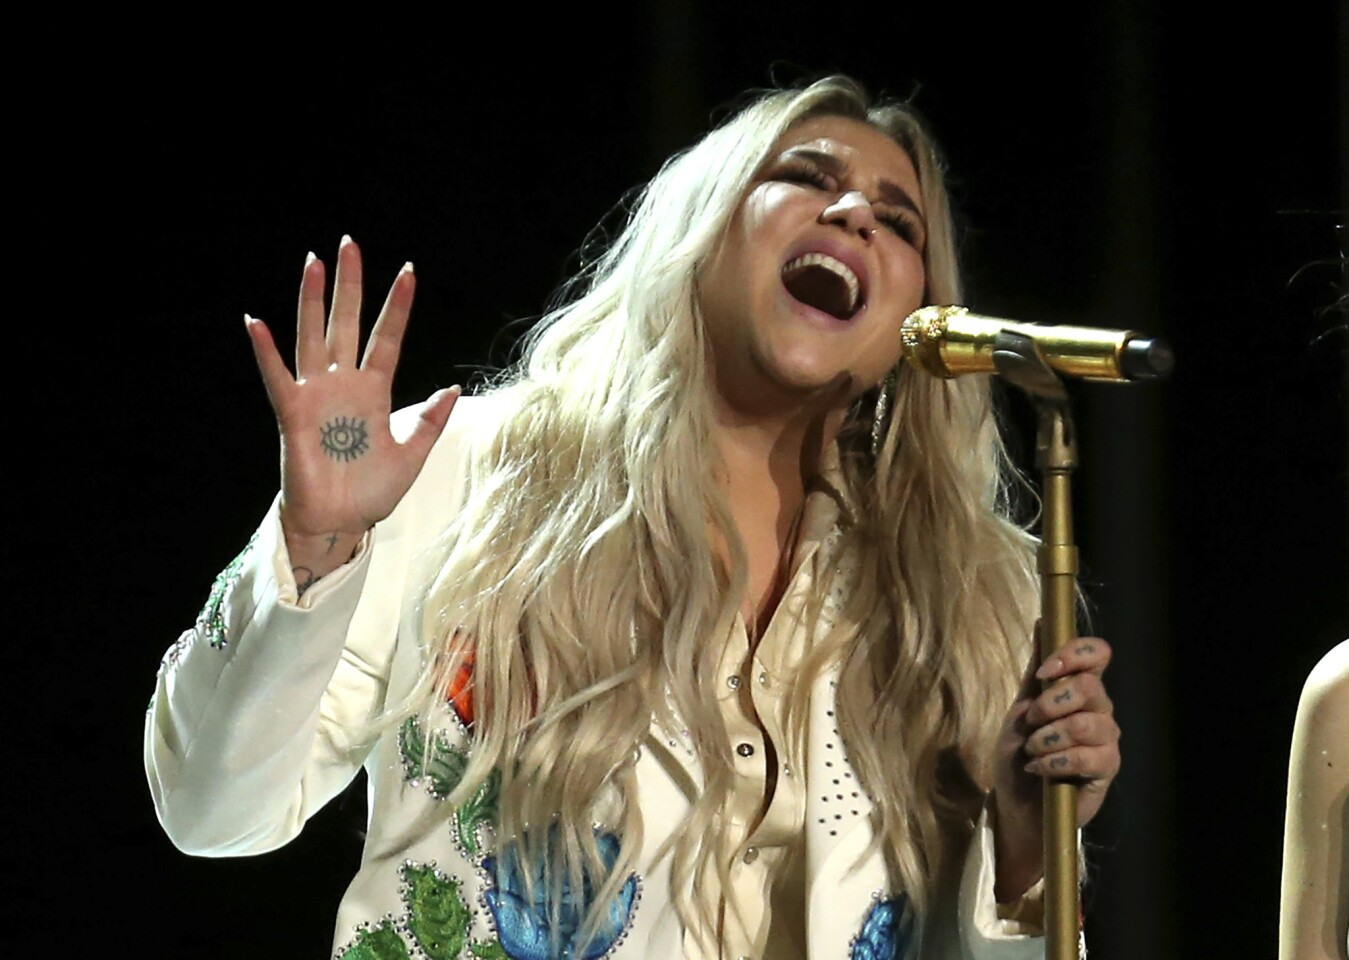 Kesha performs at the 60th Grammy Awards at Madison Square Garden in New York on Sunday.